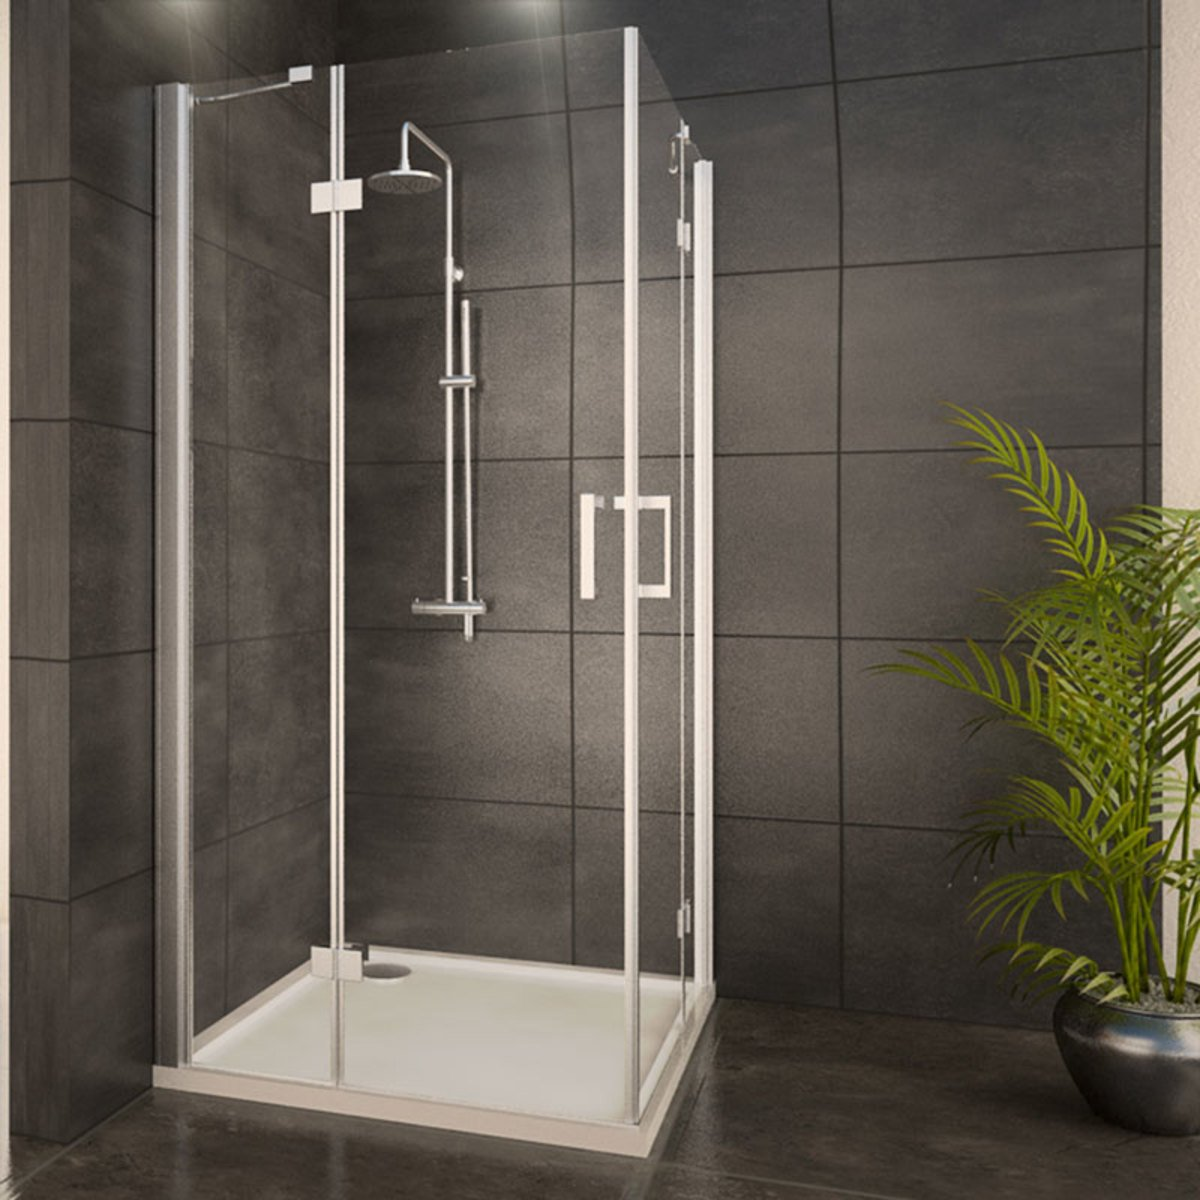 adema glass cabine de douche carr avec 2 portes pivotantes 90x90x204cm vitre claire avec. Black Bedroom Furniture Sets. Home Design Ideas